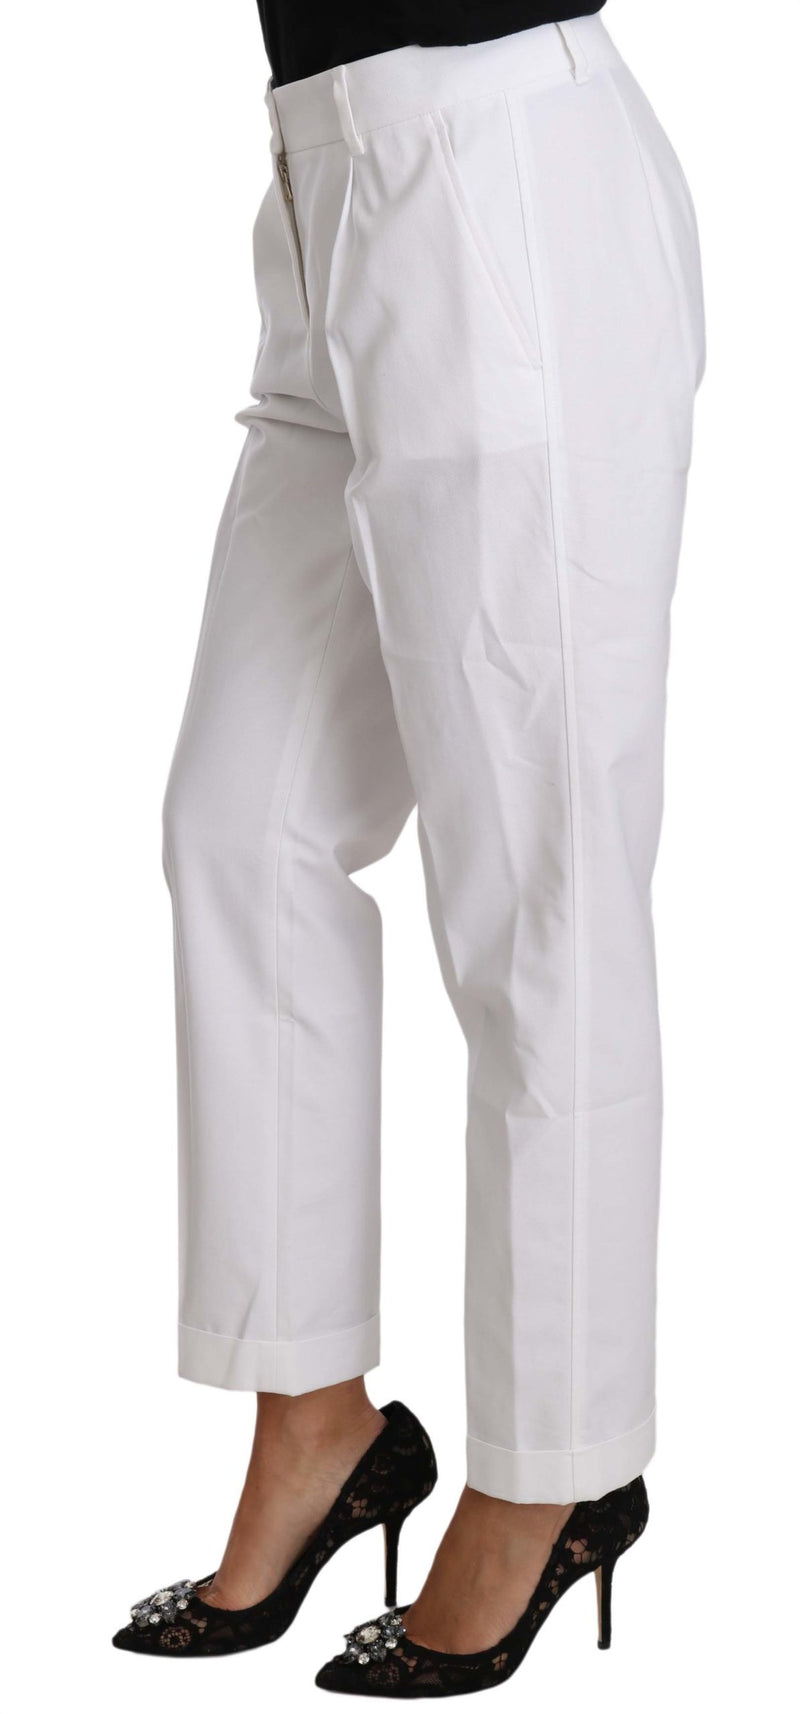 White Cotton Stretch Formal Trouser Pants